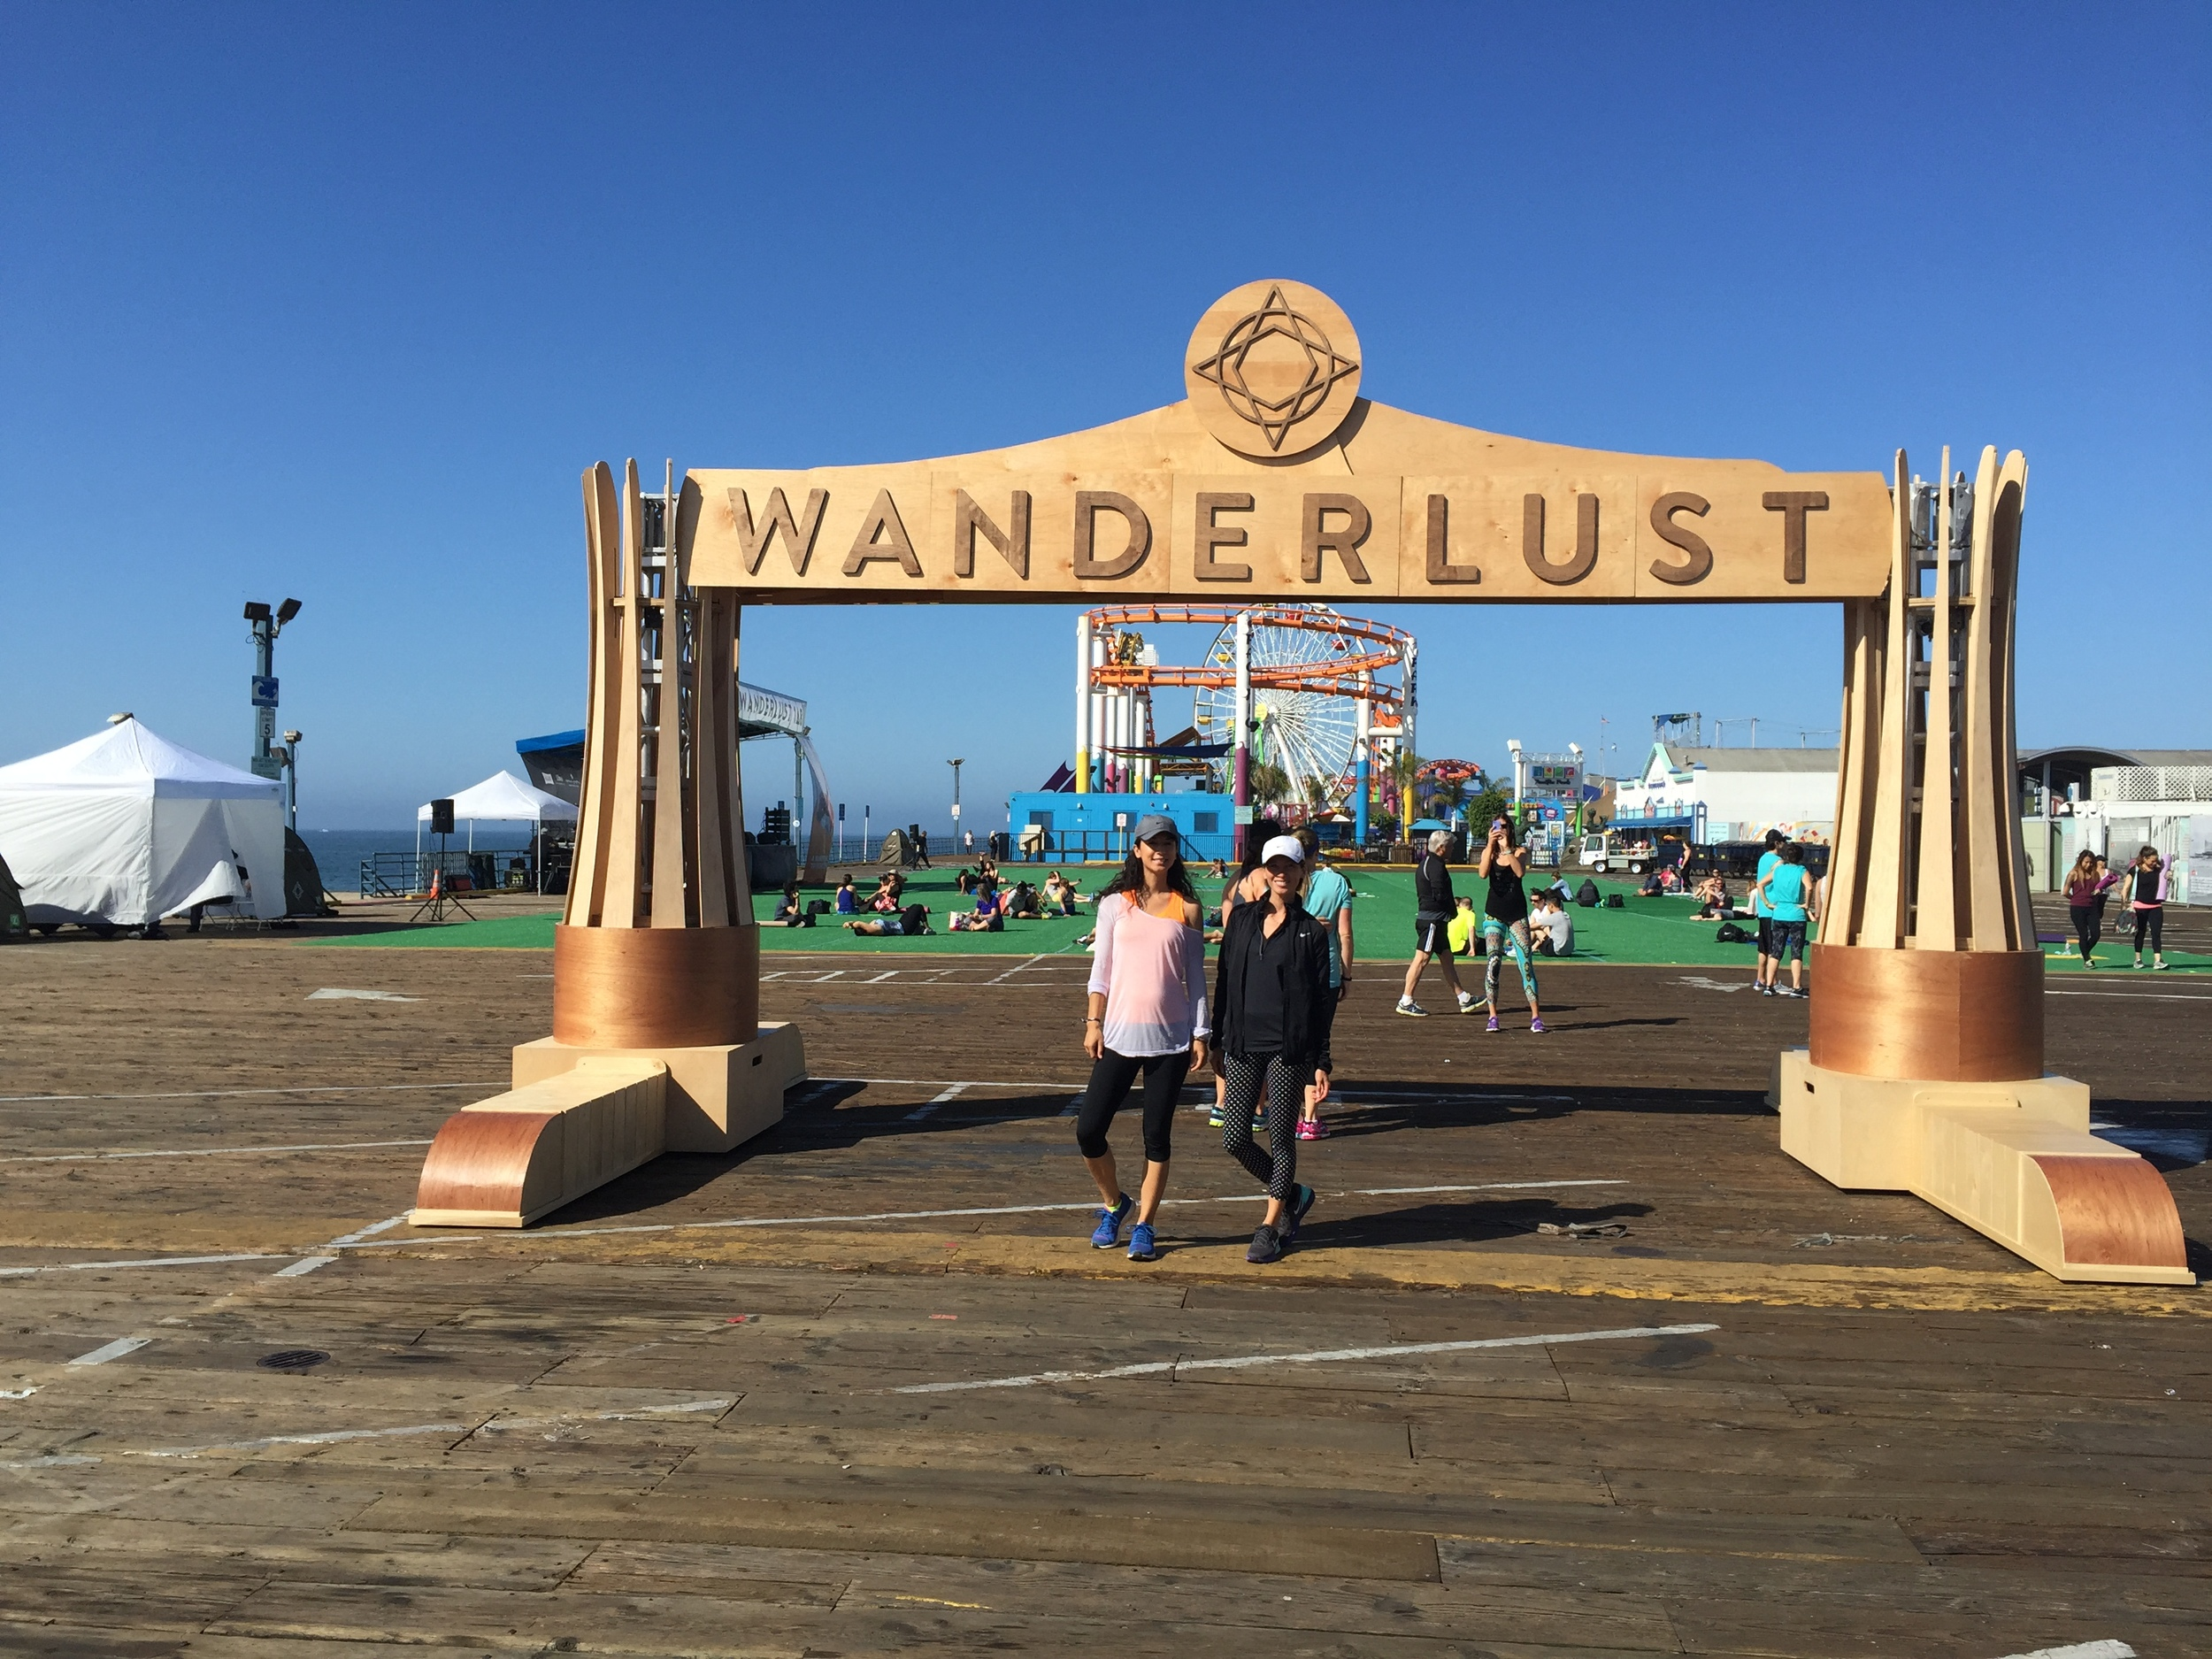 Angela Aguirre and Tiare Thomas at Wanderlust 108 in Santa Monica 2014